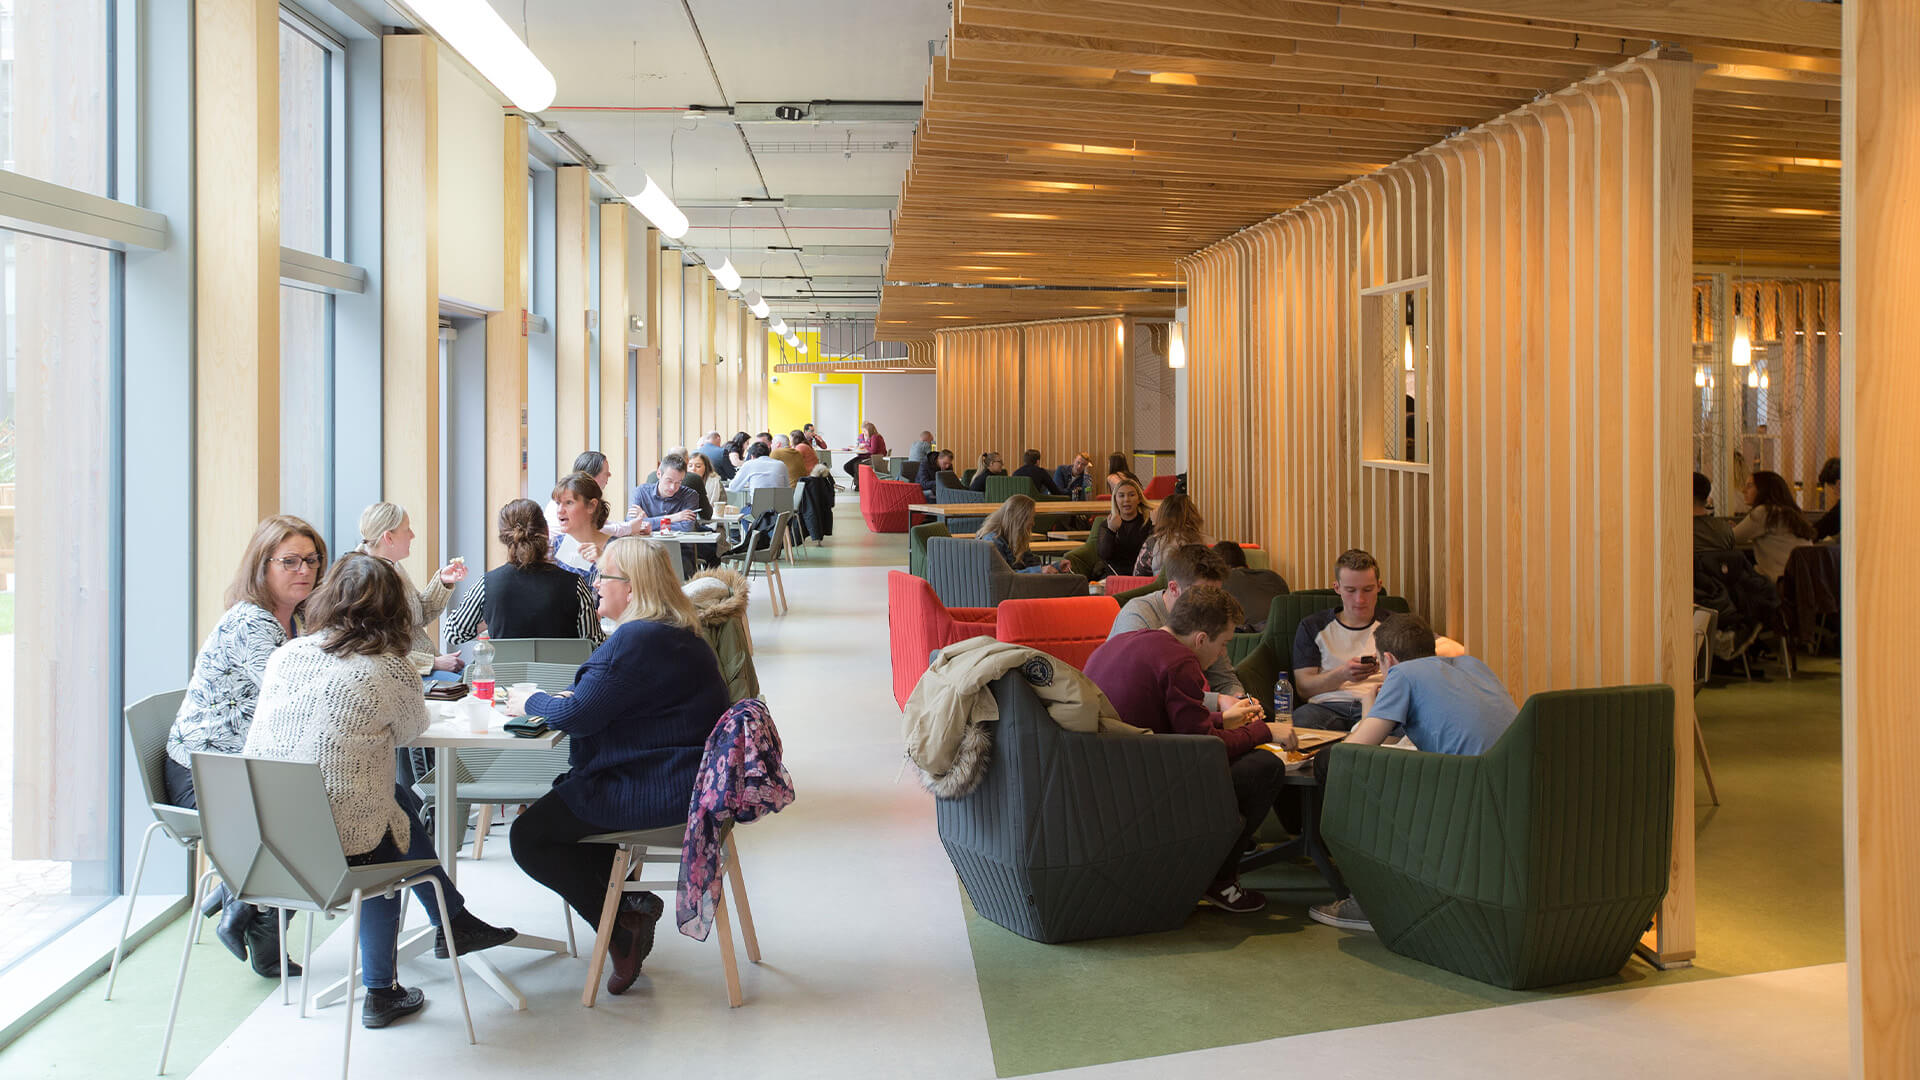 Lunch room and breakout area at Glasgow Caledonian University campus